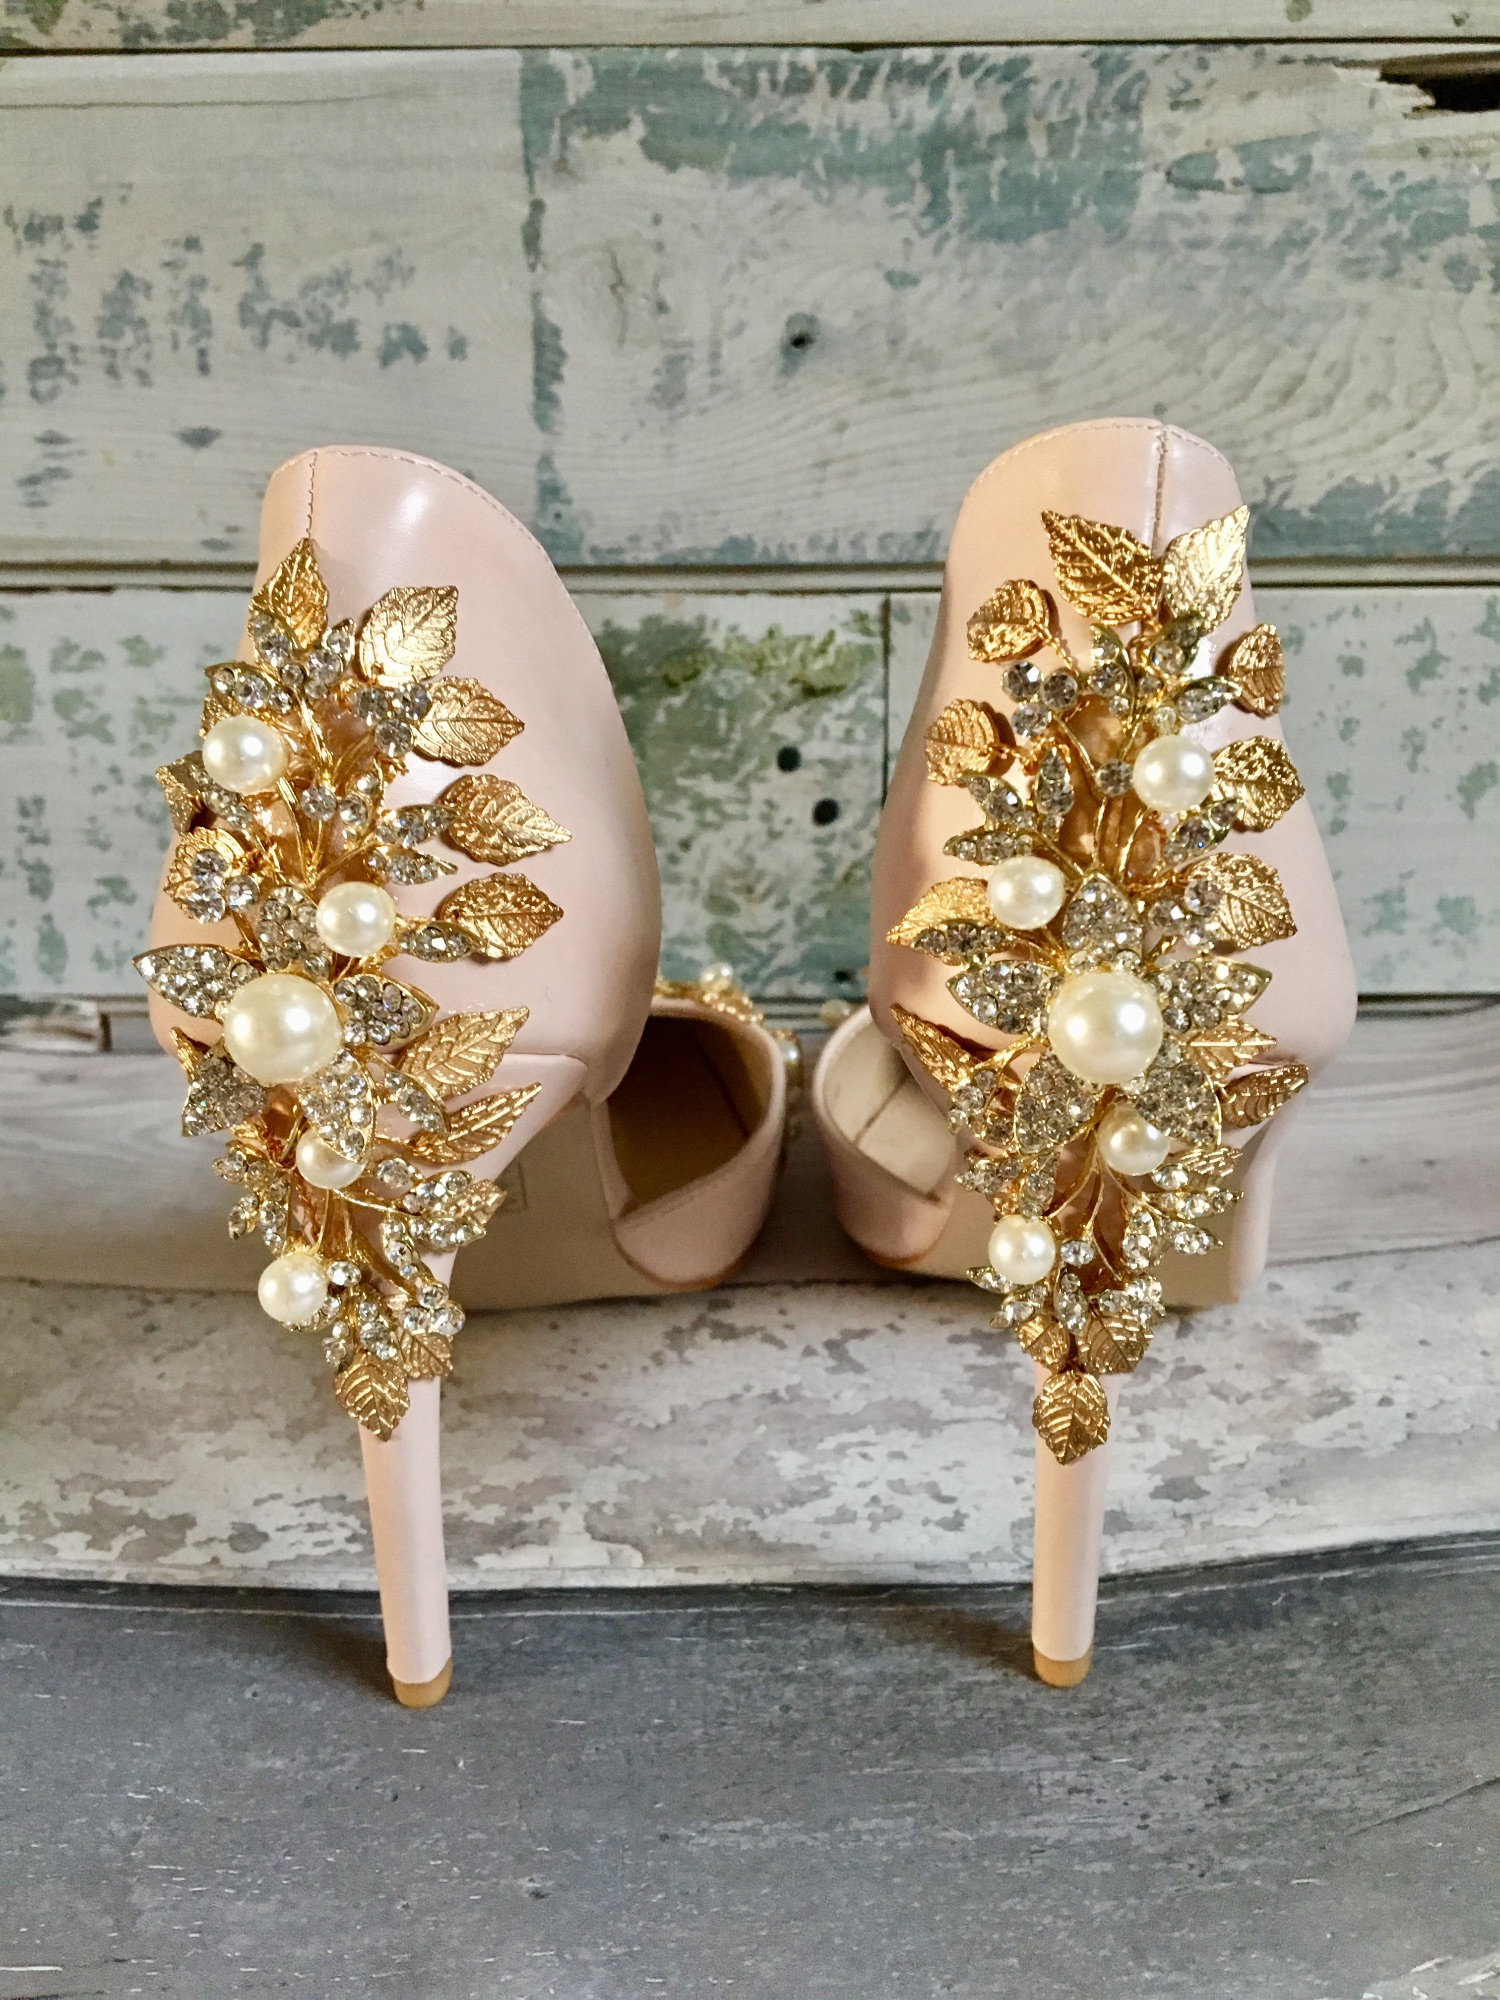 Gem heel, leaf heel shoes custom designed by Lace and Love. gold flowers and leaves